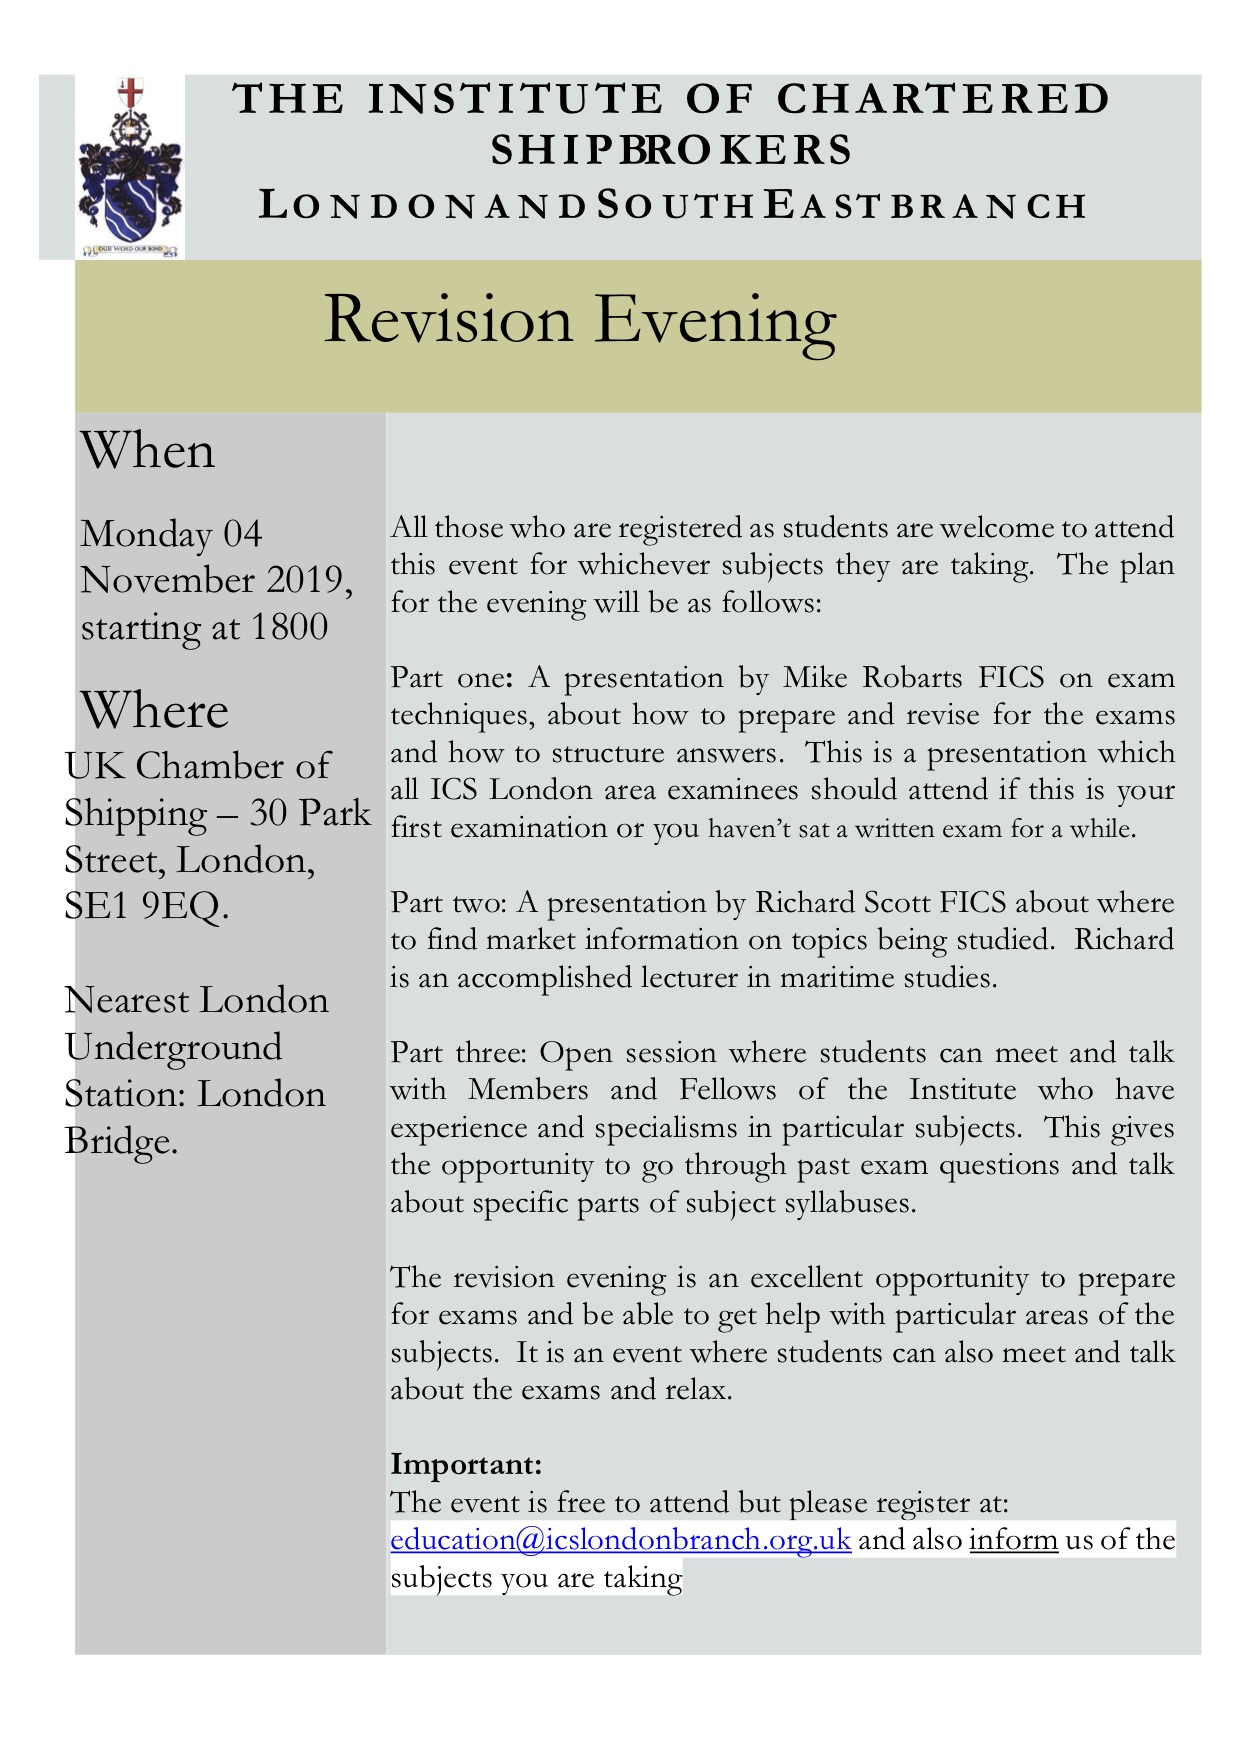 Nov 19 Revision evening flyer